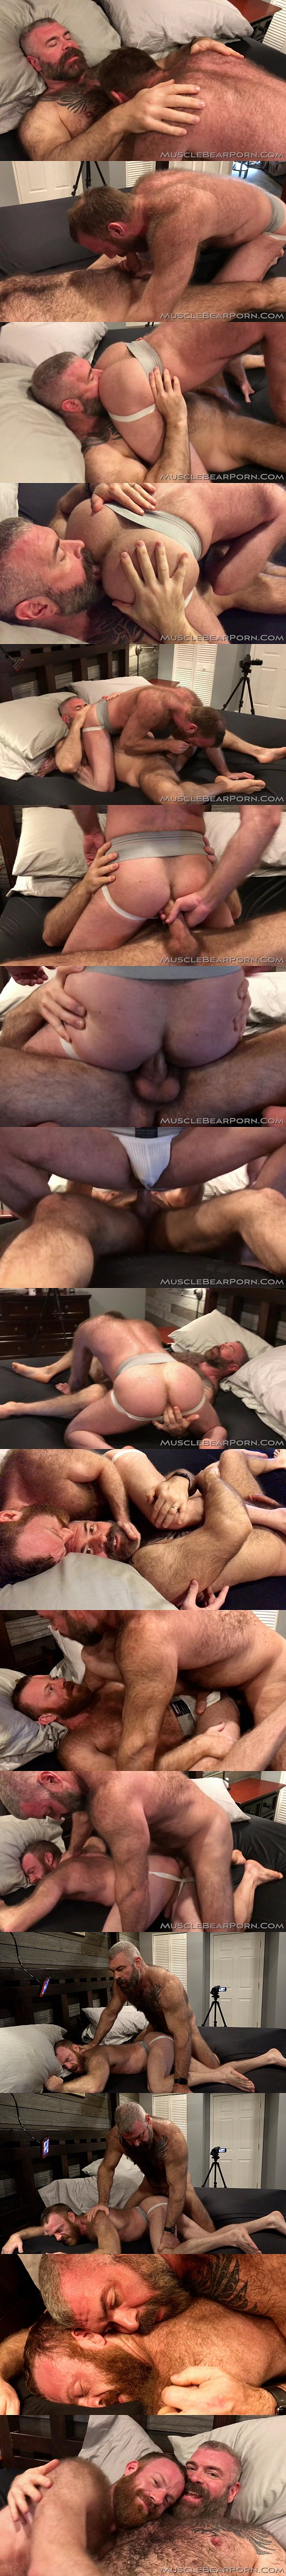 Will Angell barebacks and creampies sexy fuzzy ginger stud Russell Tyler in Daddy and A Furry Boy at Musclebearporn 02